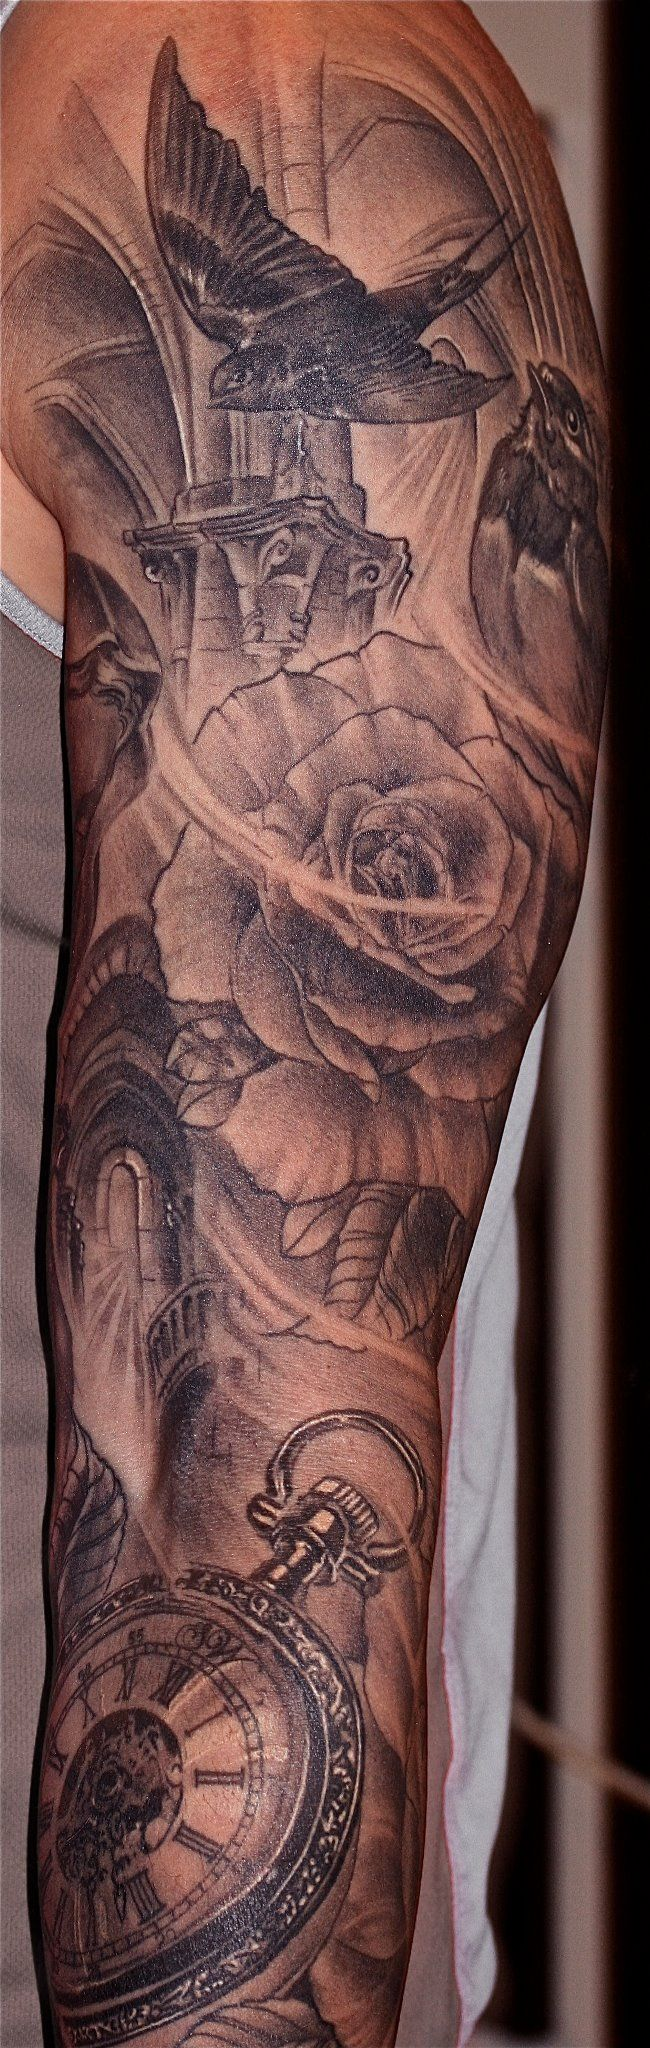 Clock Tattoo Sleeve: Clocks, Compass And Hourglass Images On